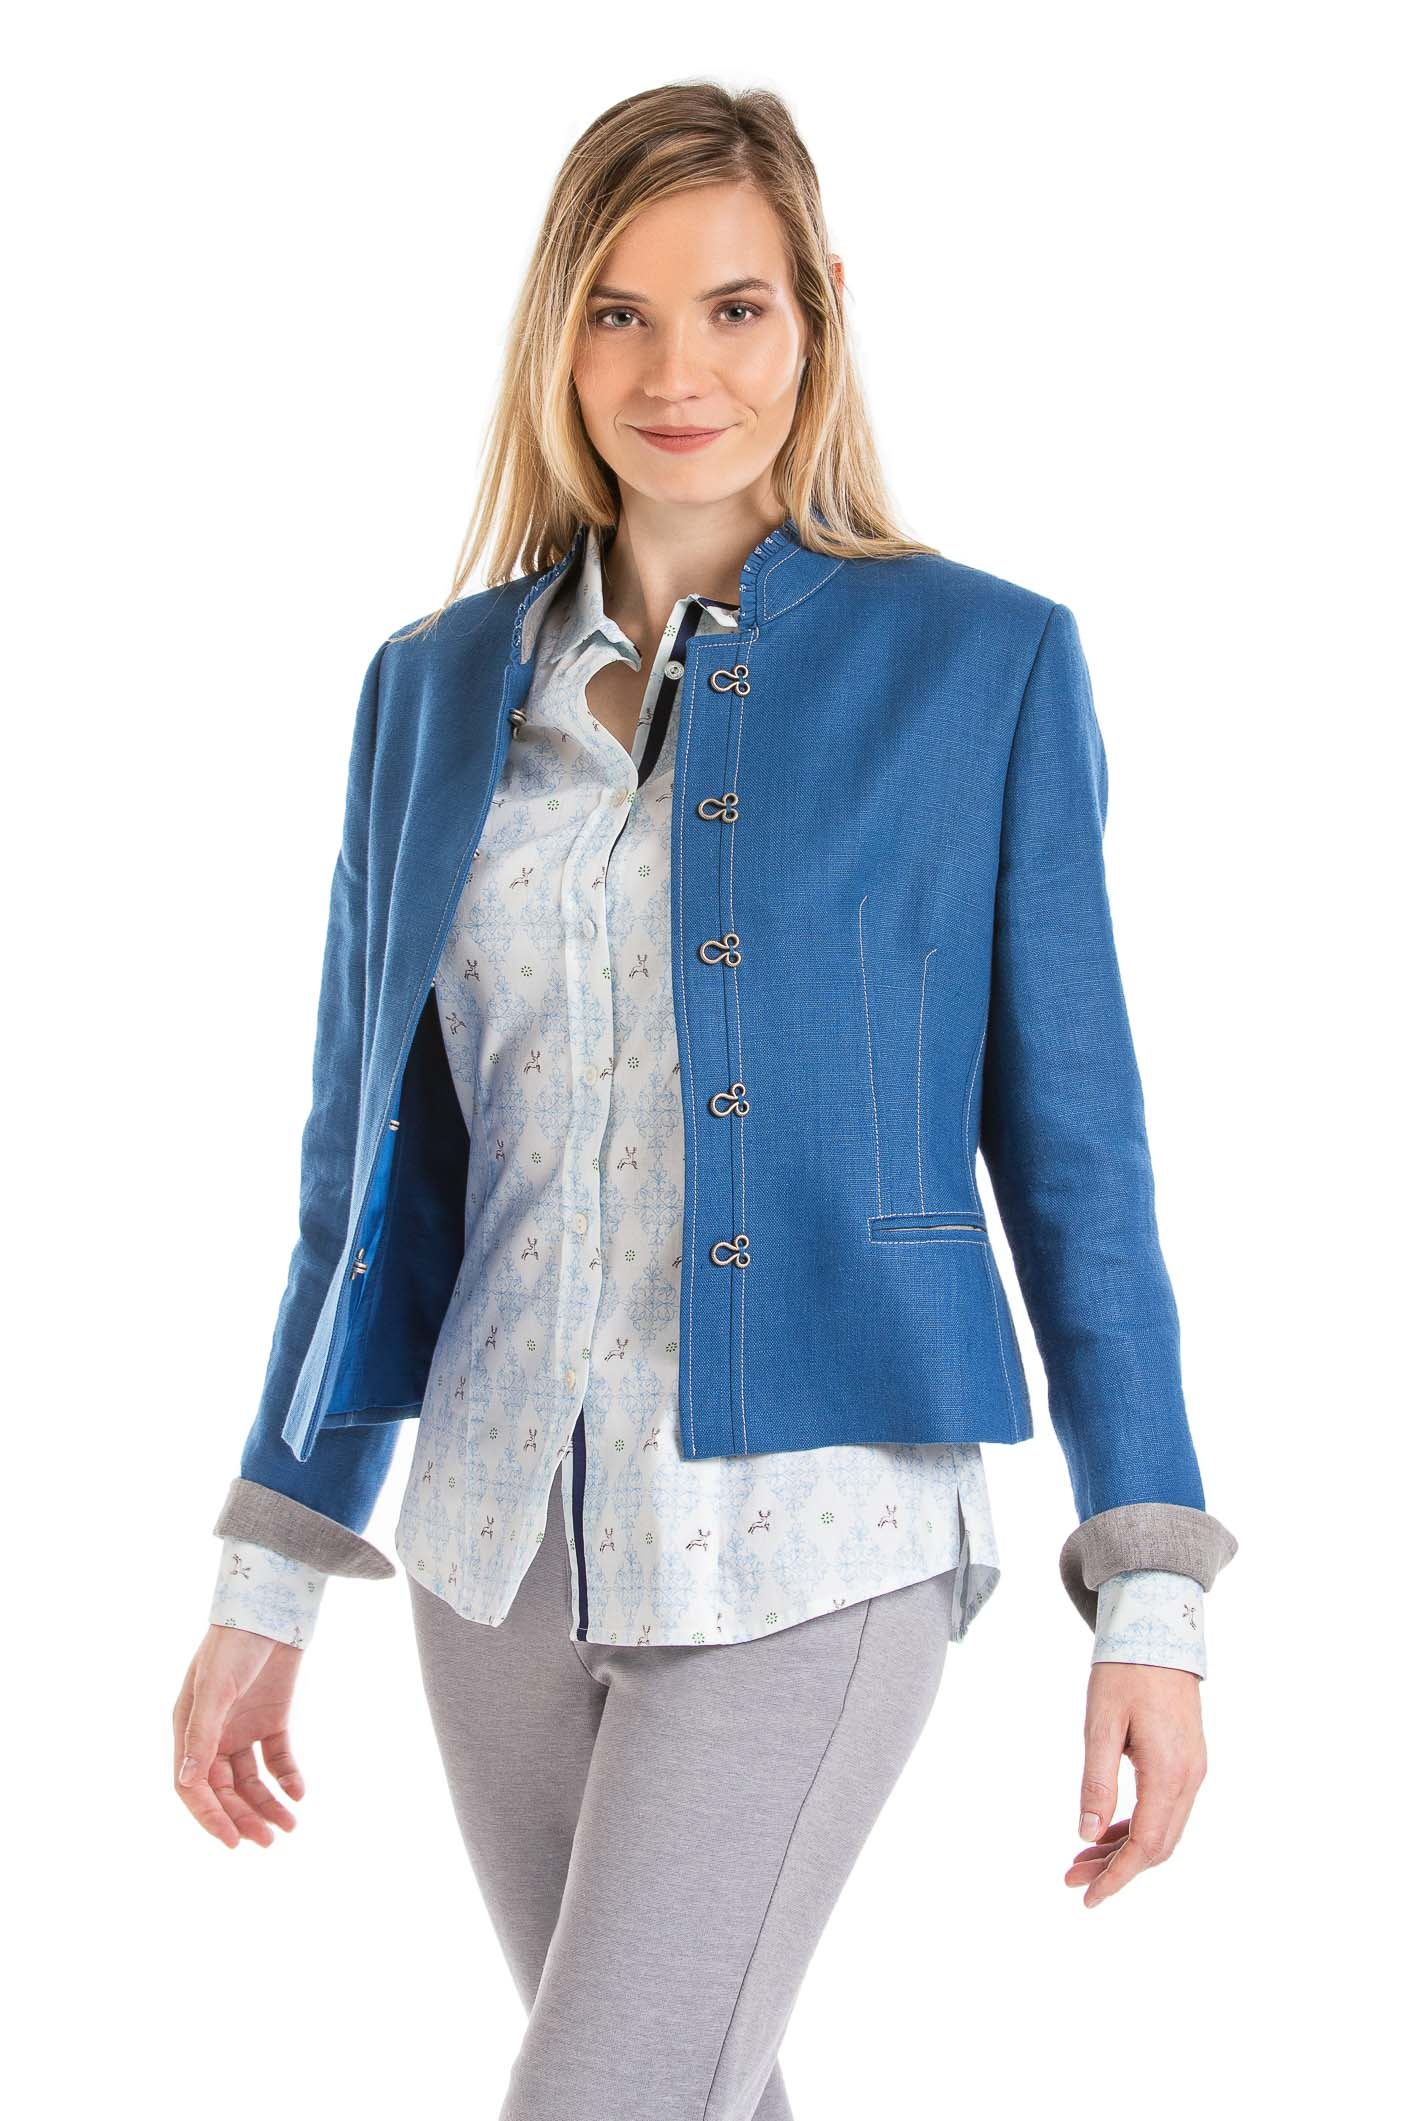 young blonde women wearing a blue Austrian linen jacket